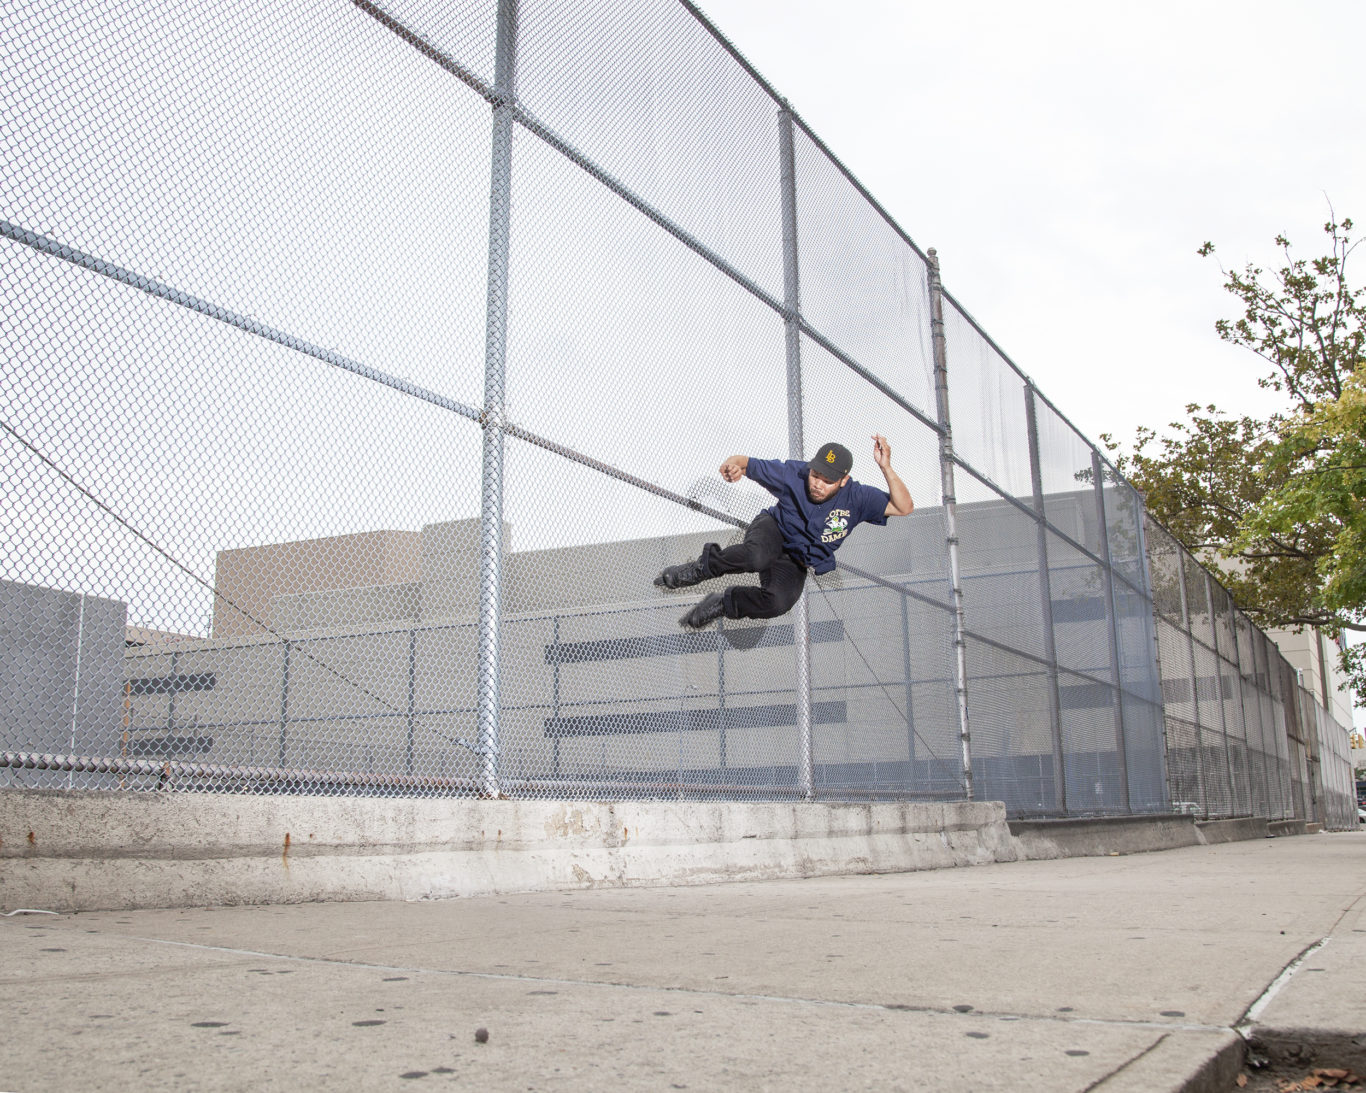 08_22_16_GREG_PRESTON_FENCE_BONK